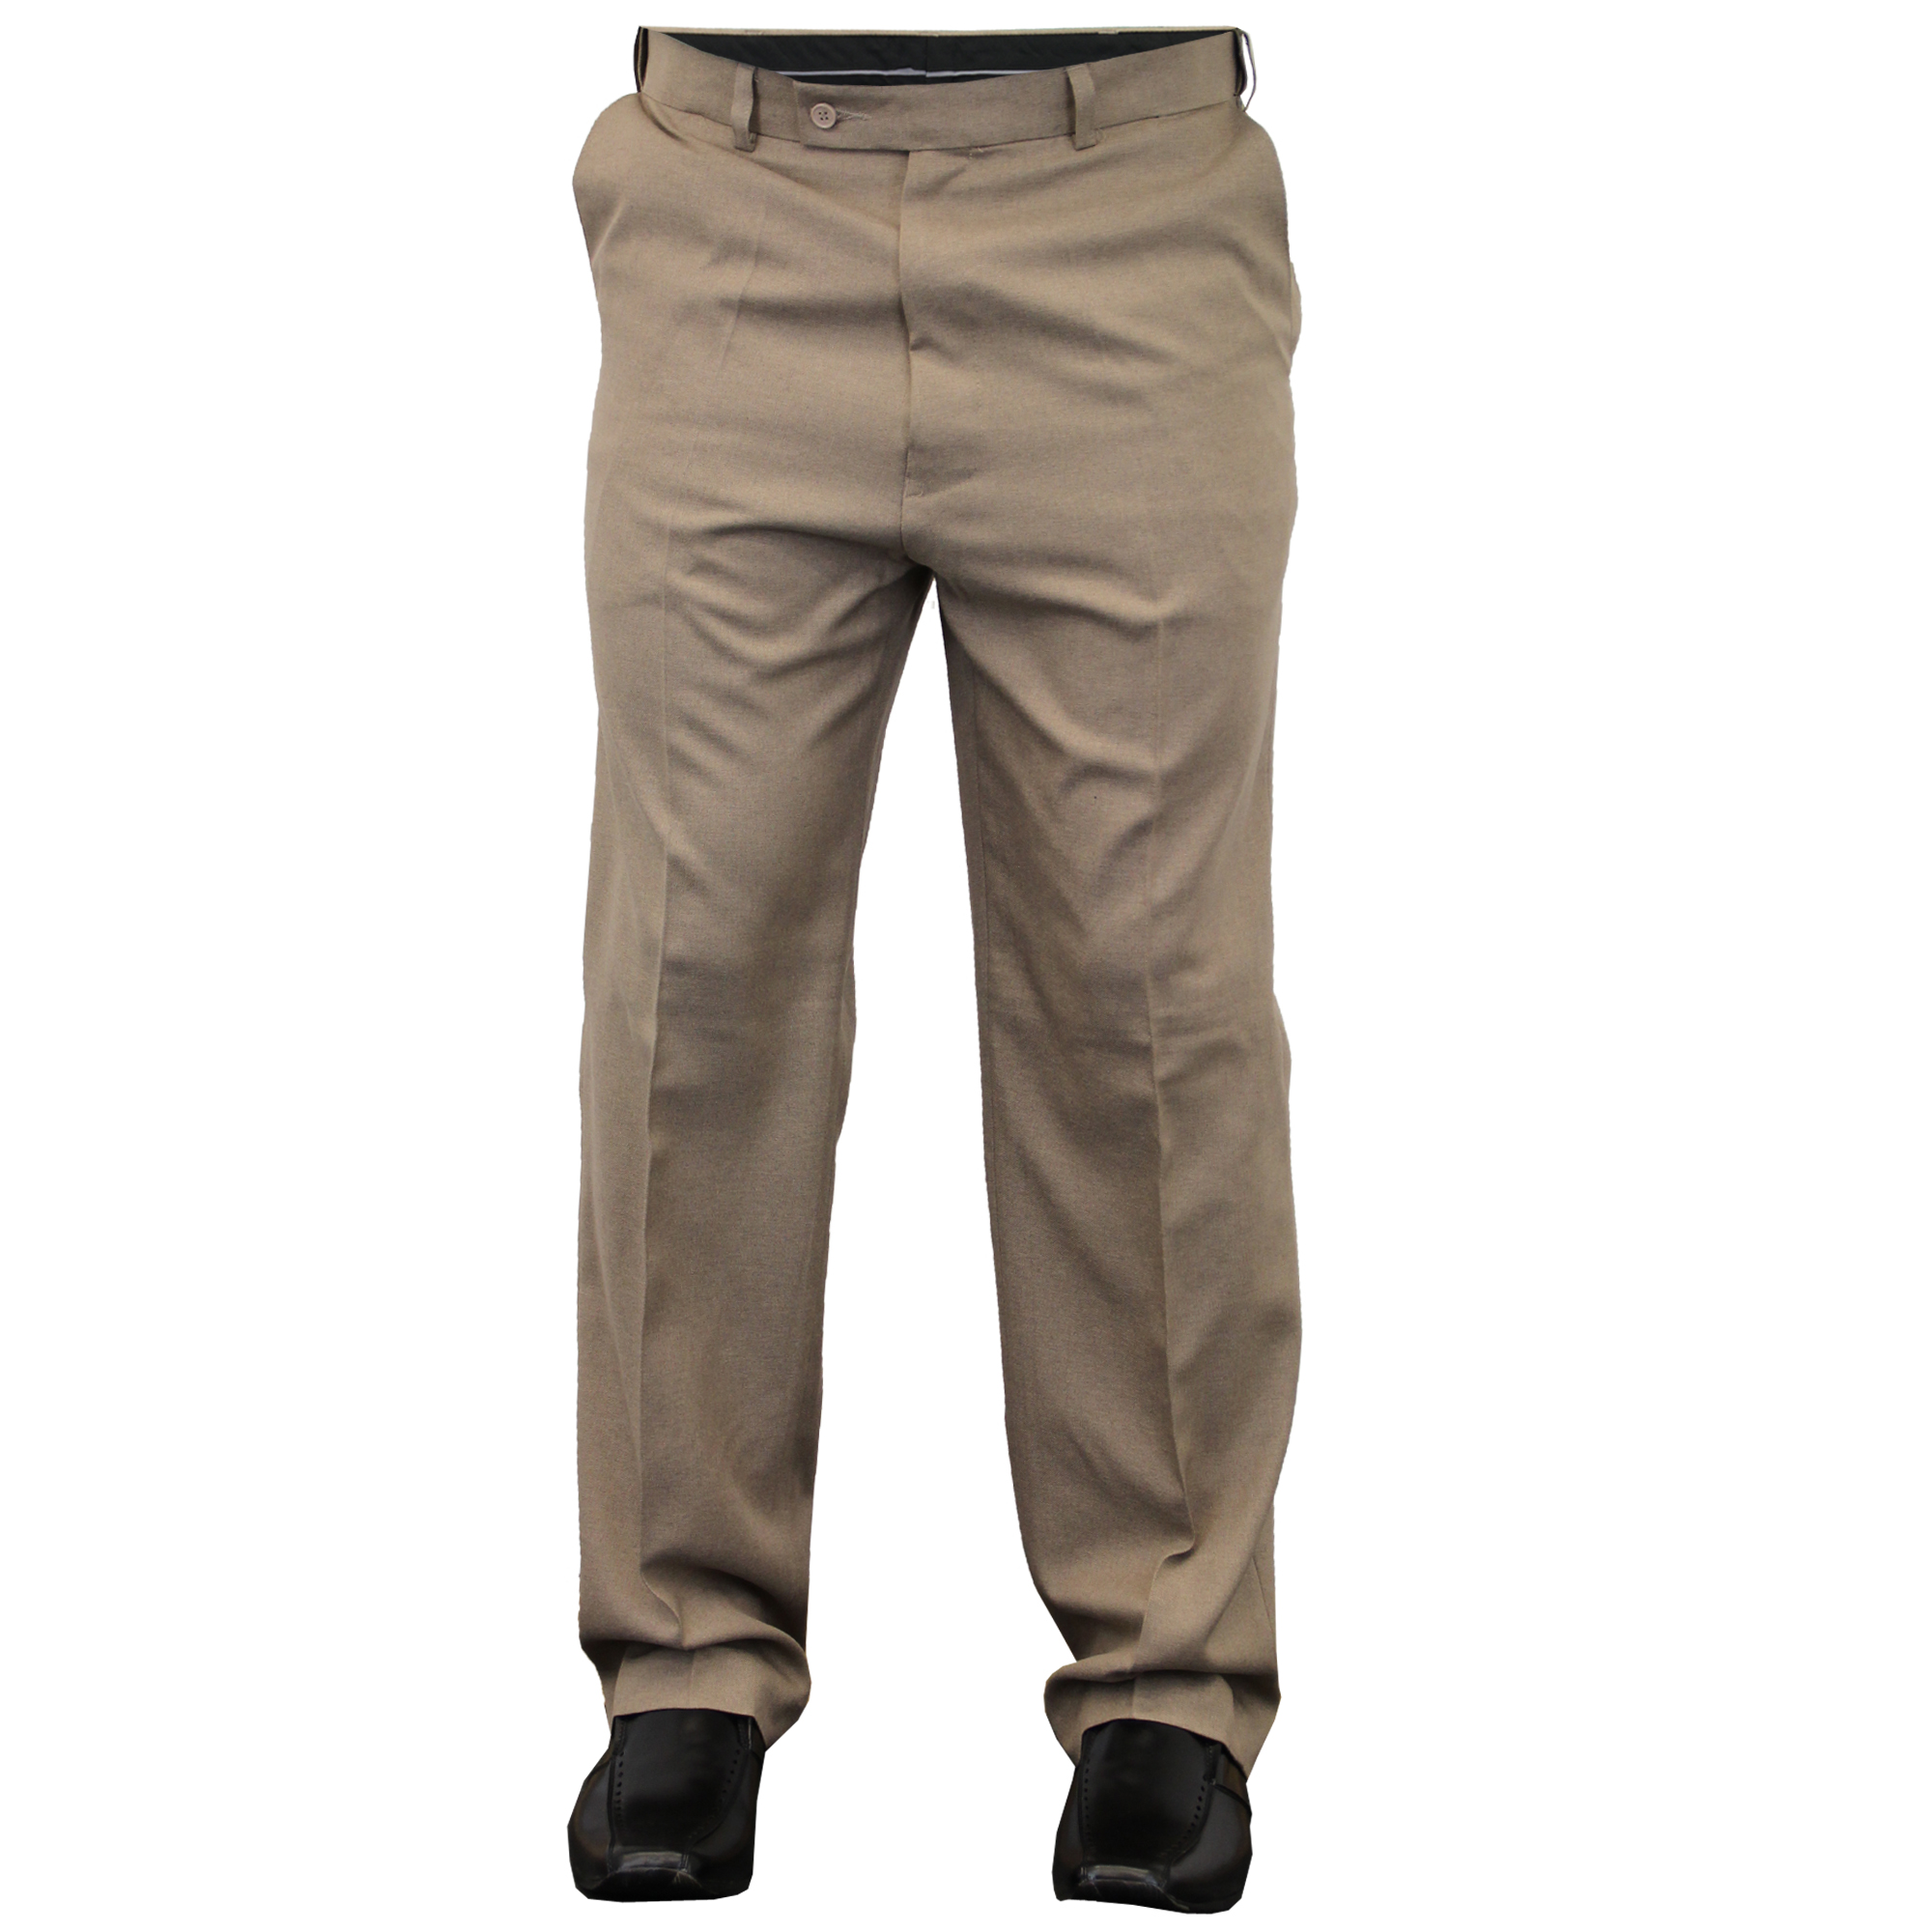 Mens Formal Trouser Pants By Woodbrie Club Collection | EBay